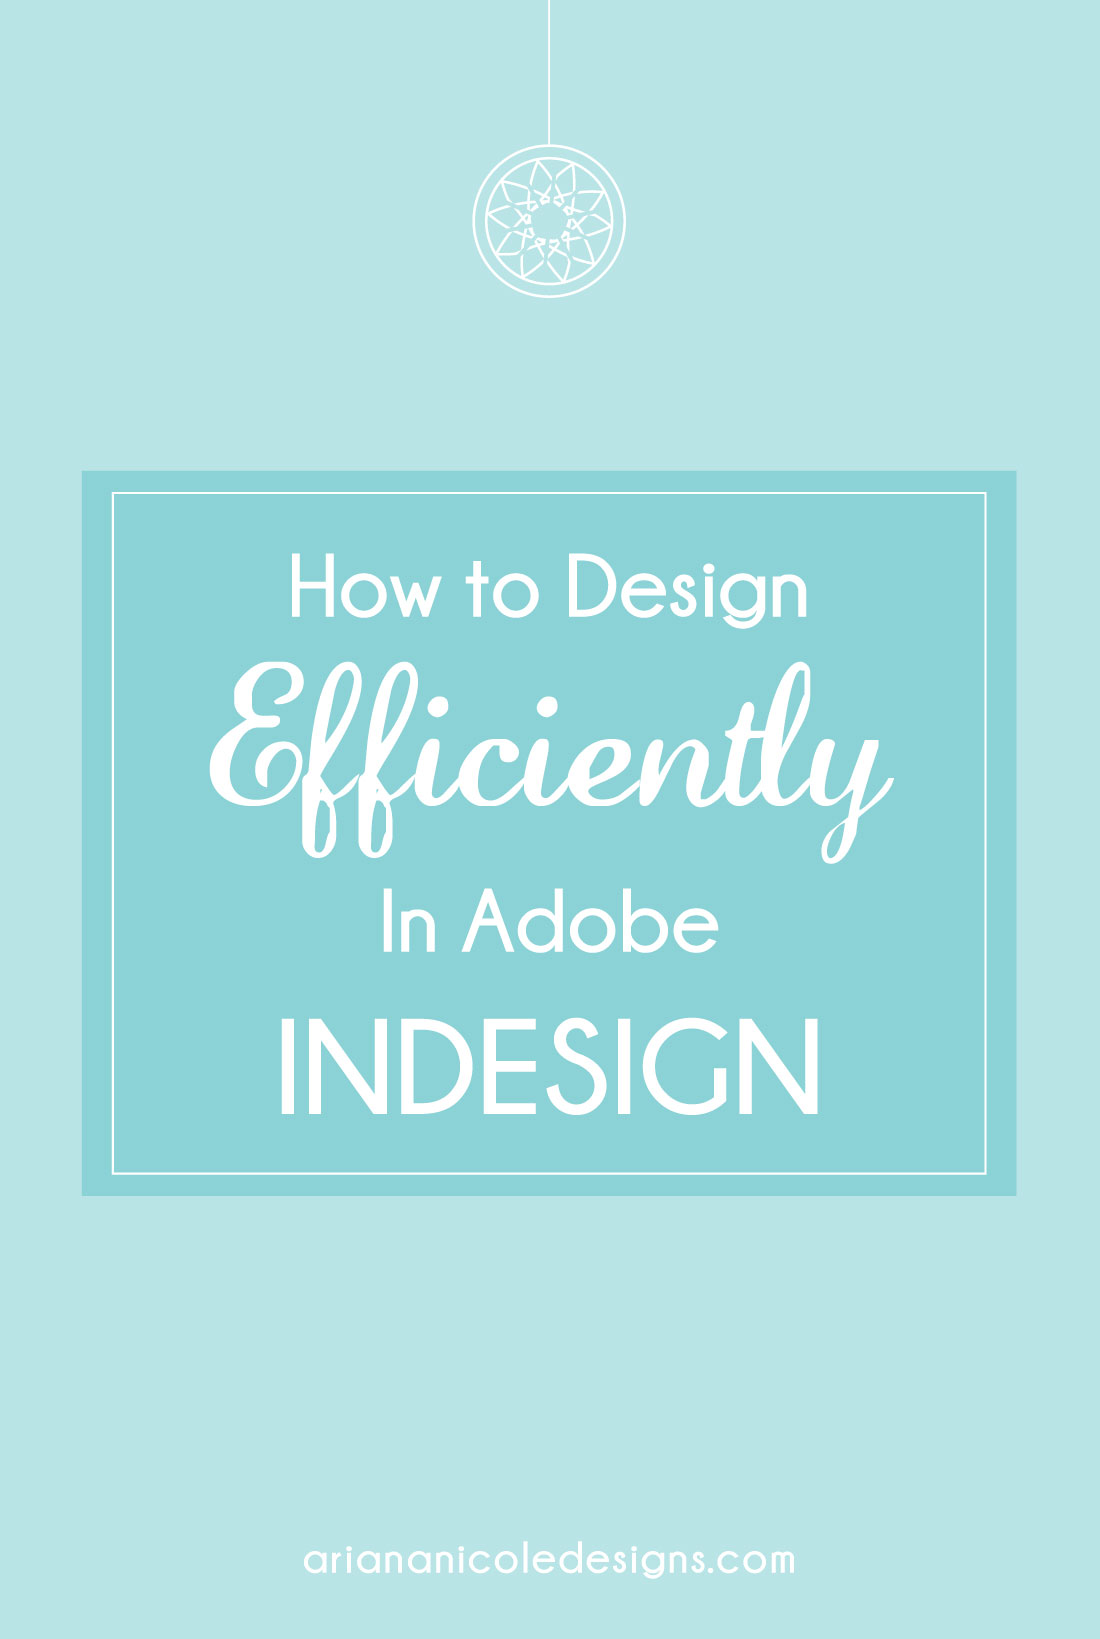 How-To-Design-Efficiently-In-Adobe-Indesign-Ariana-Nicole